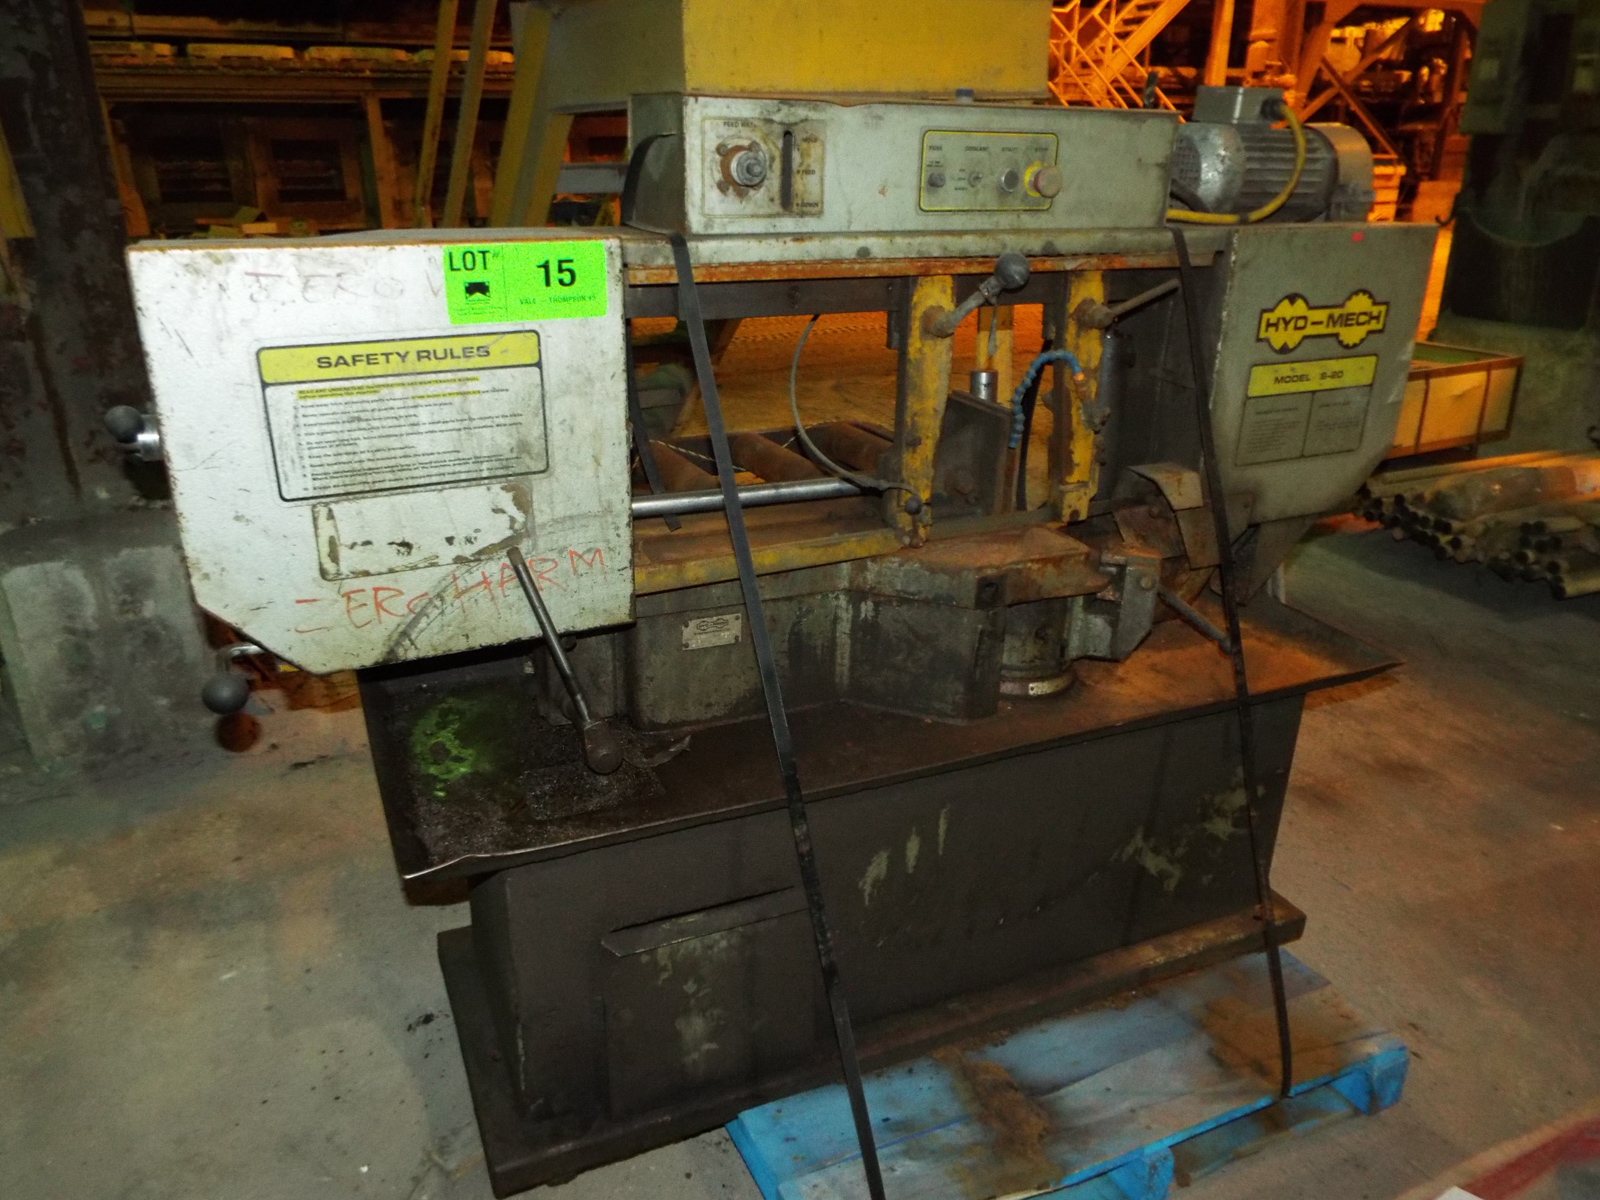 """HYD-MECH S-20 AUTOMATIC HORIZONTAL BAND SAW WITH 13""""X18"""" CAPACITY, 370 RPM, 2 HP, VARIABLE FEED - Image 7 of 7"""